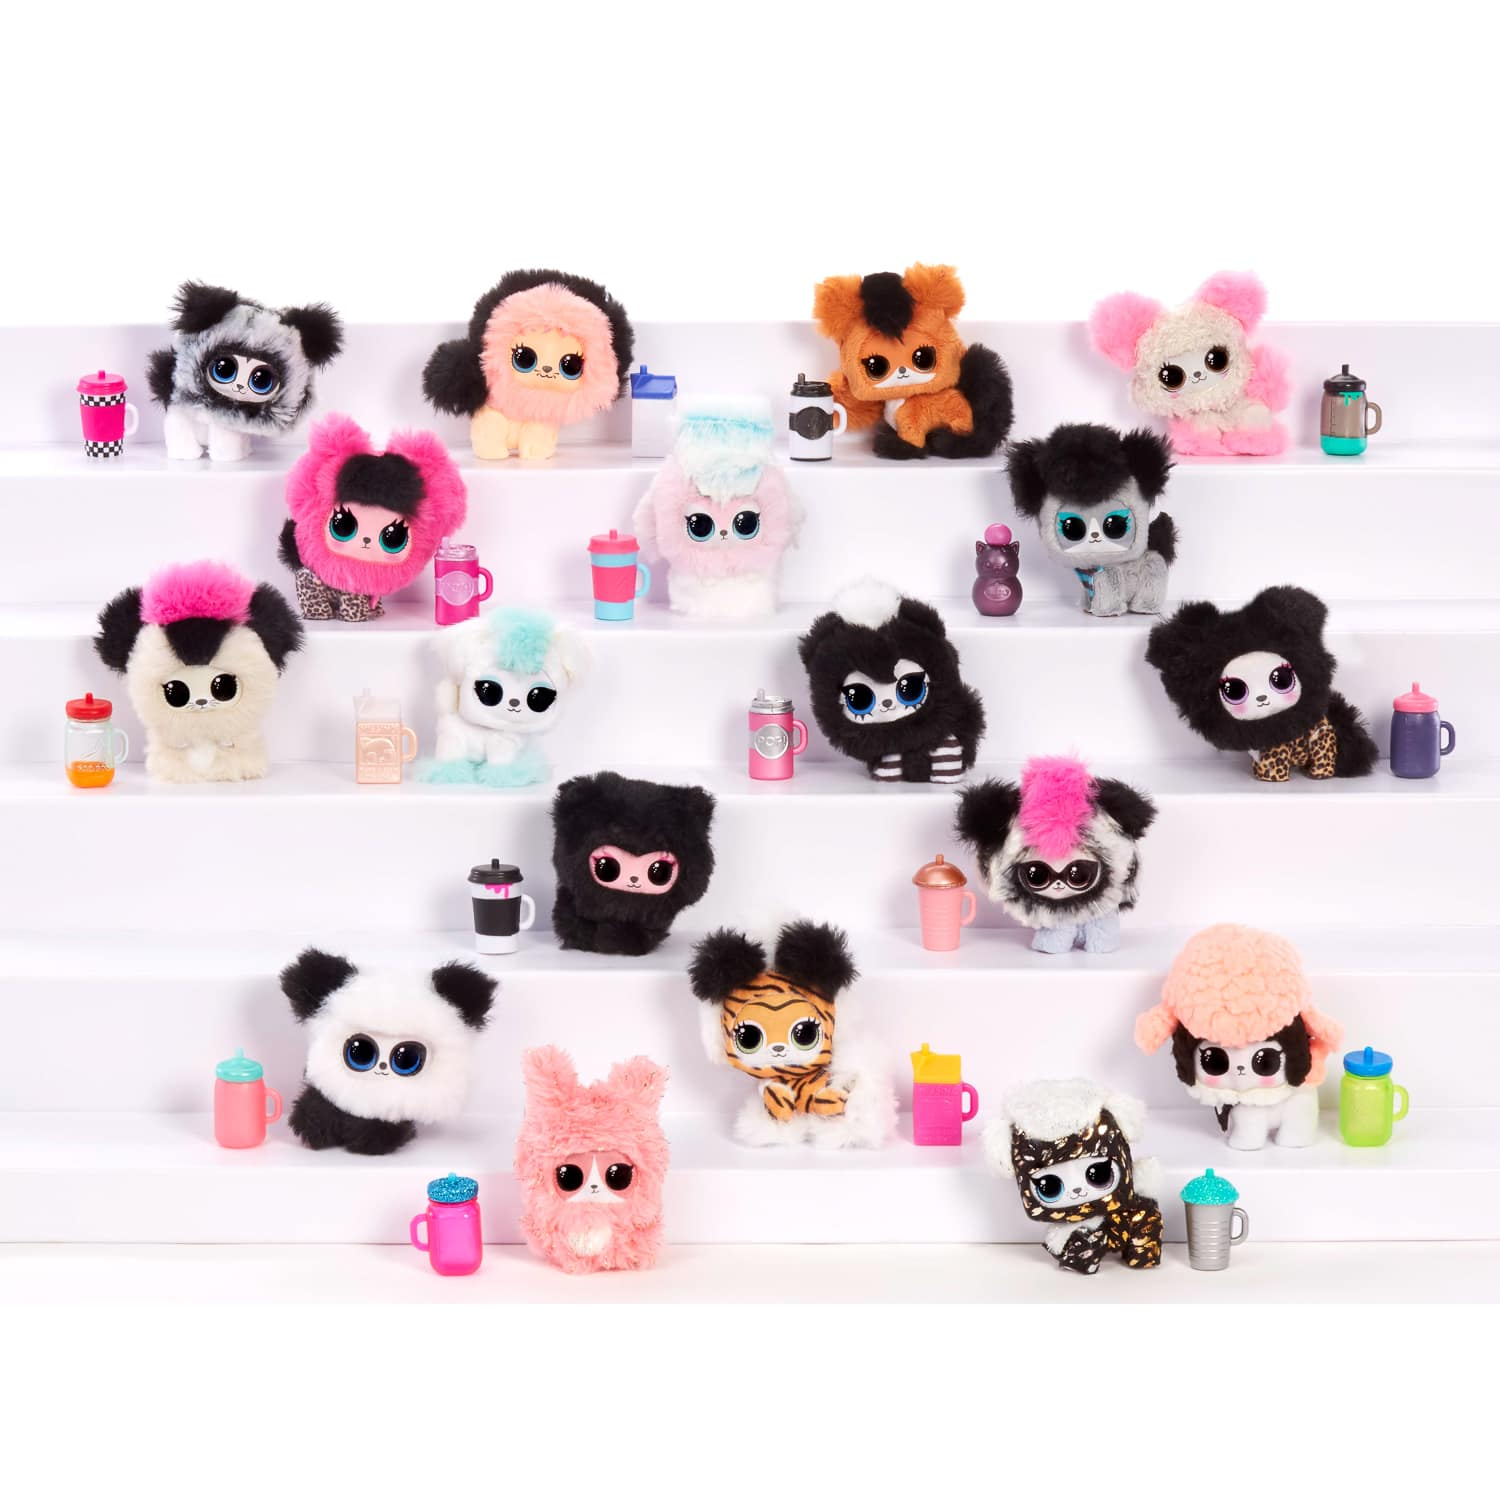 IN HAND NEW NEW NEW LOL SURPRISE WINTER DISCO LILS DOLLS BOX OF 16 FULL CASE